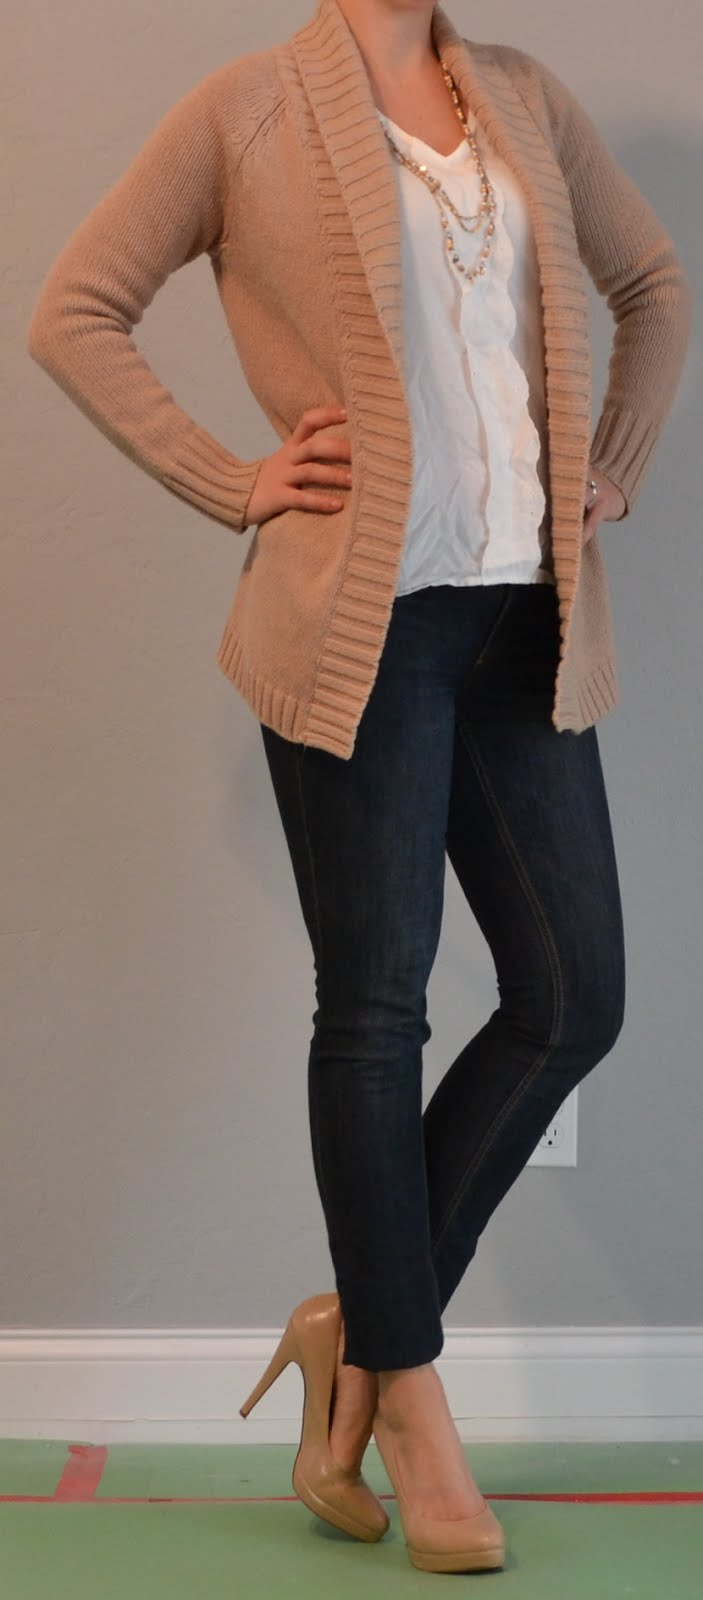 Outfit Post Skinny Jeans Heels Comfy Tan Cardigan